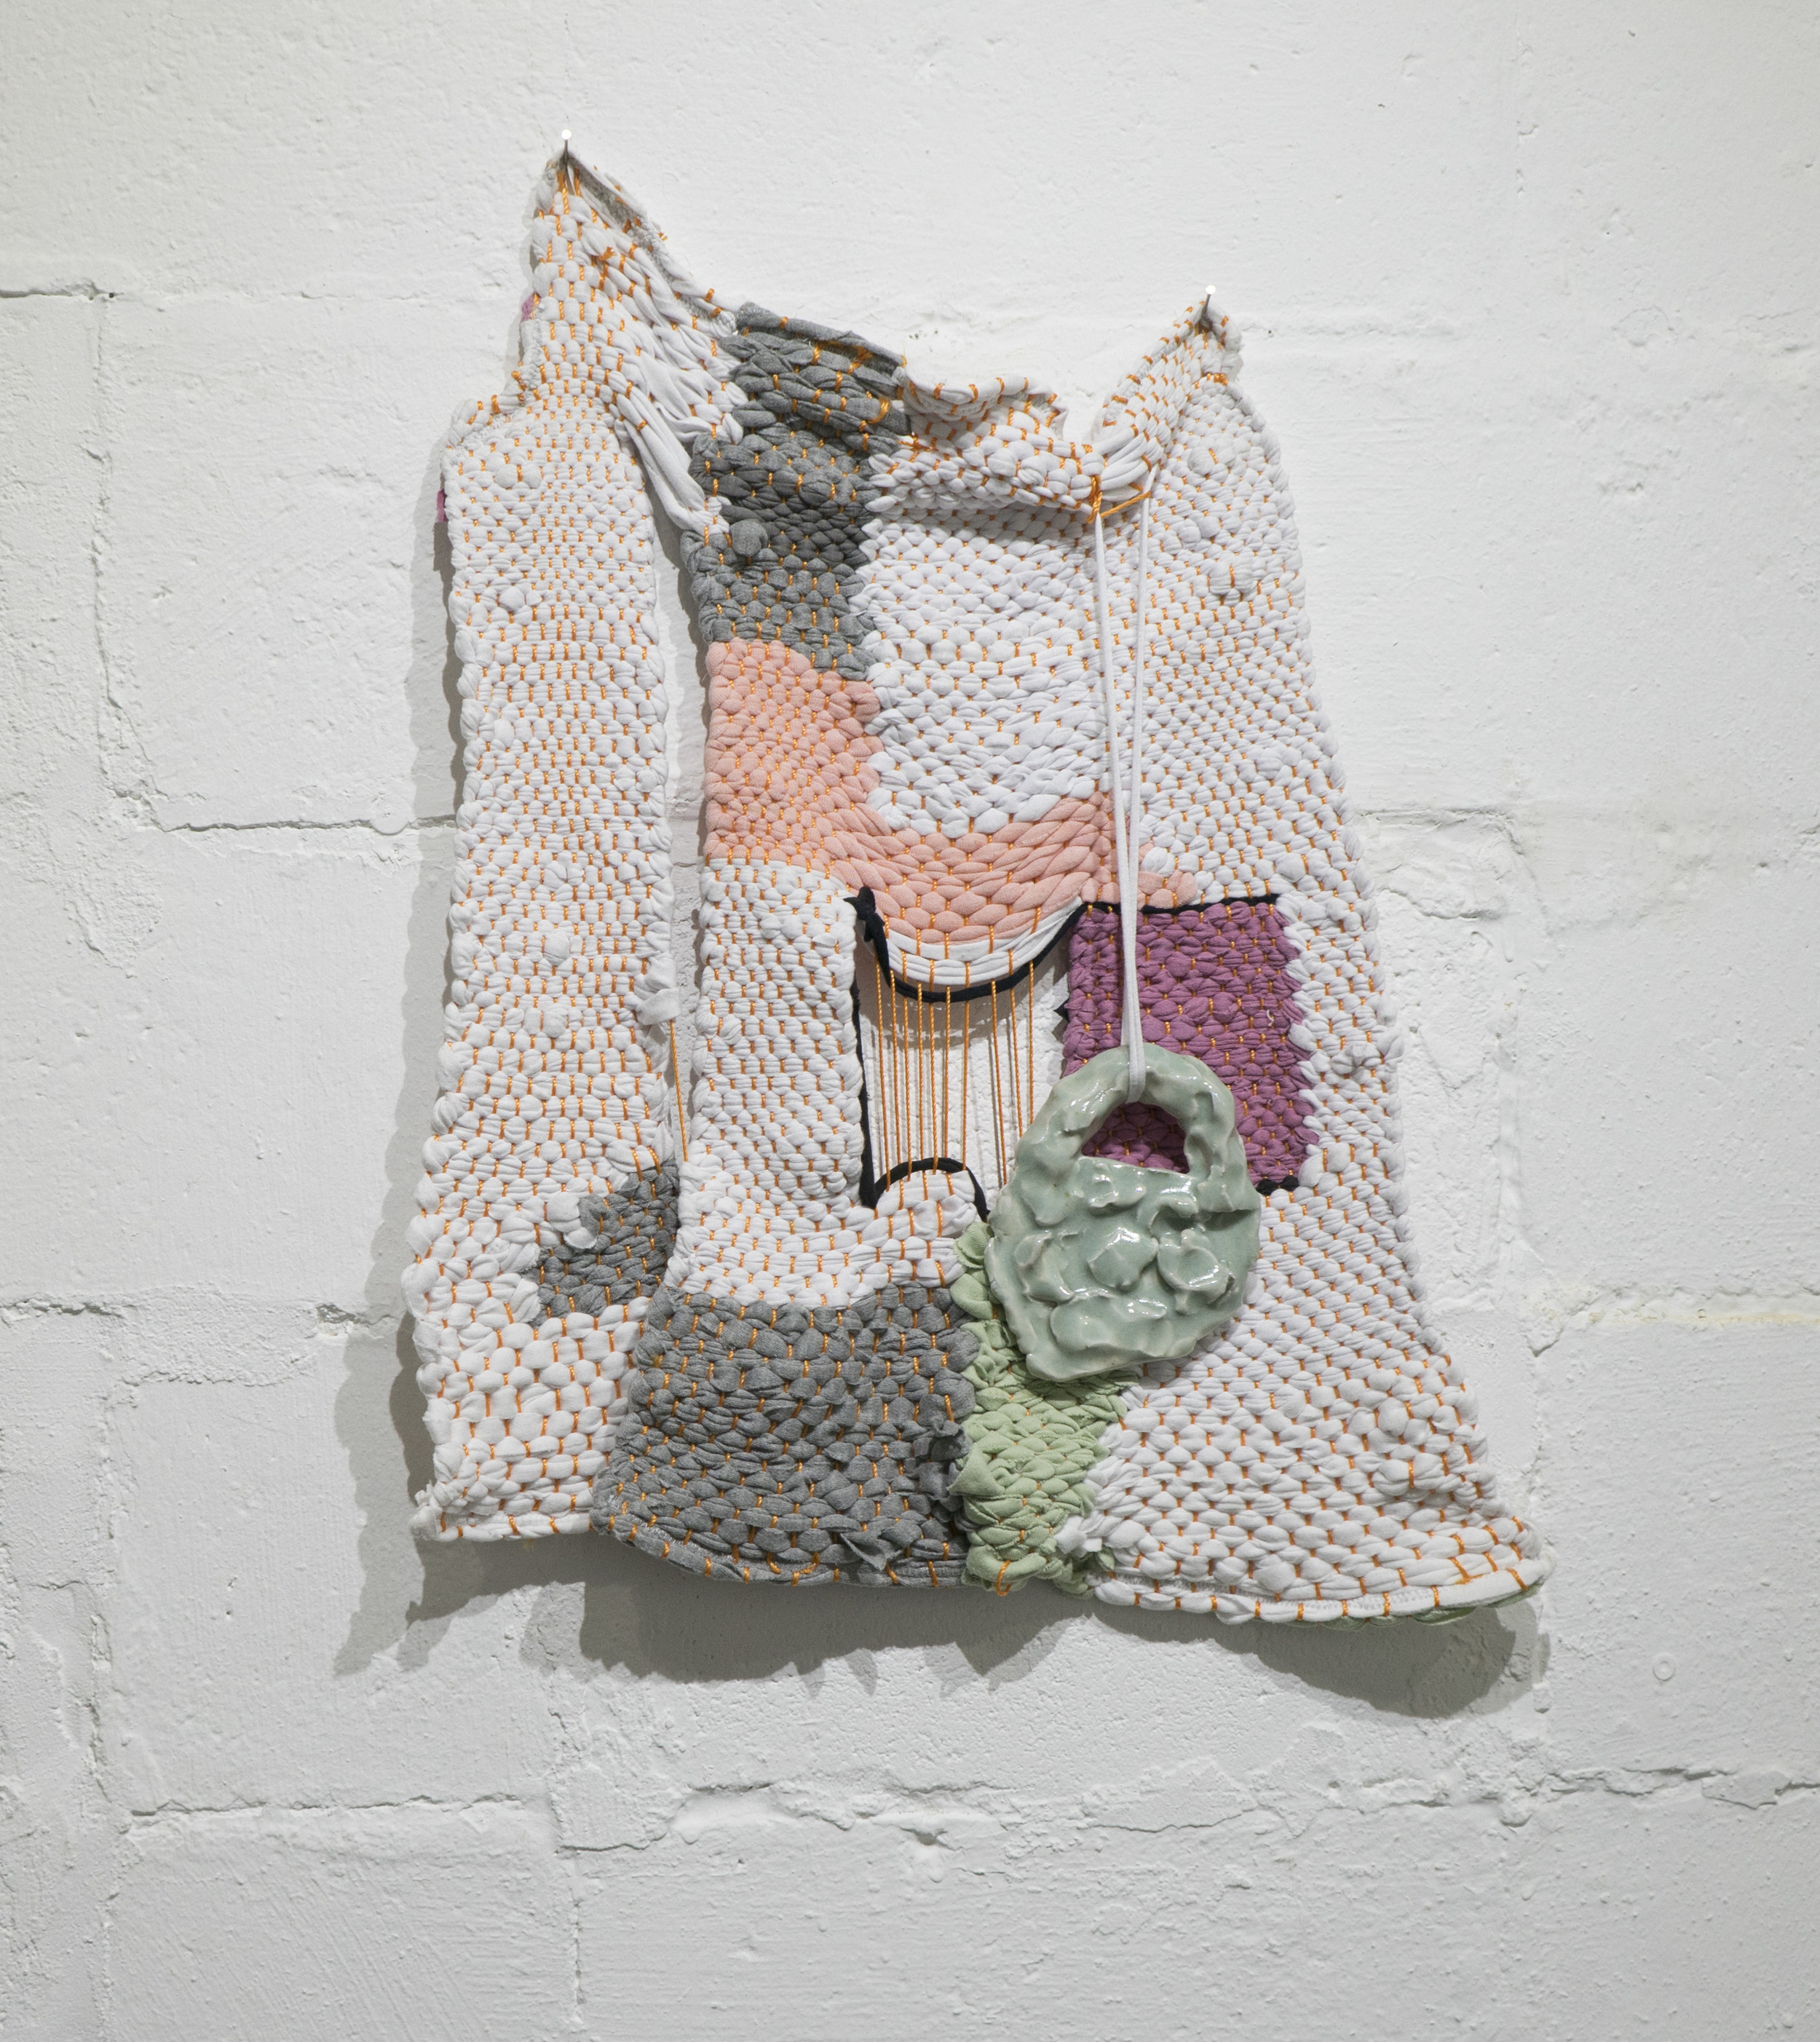 Untitled (Wall Weaving #1)       Allison Wade     Ceramic, hand-dyed knit, knit   2016